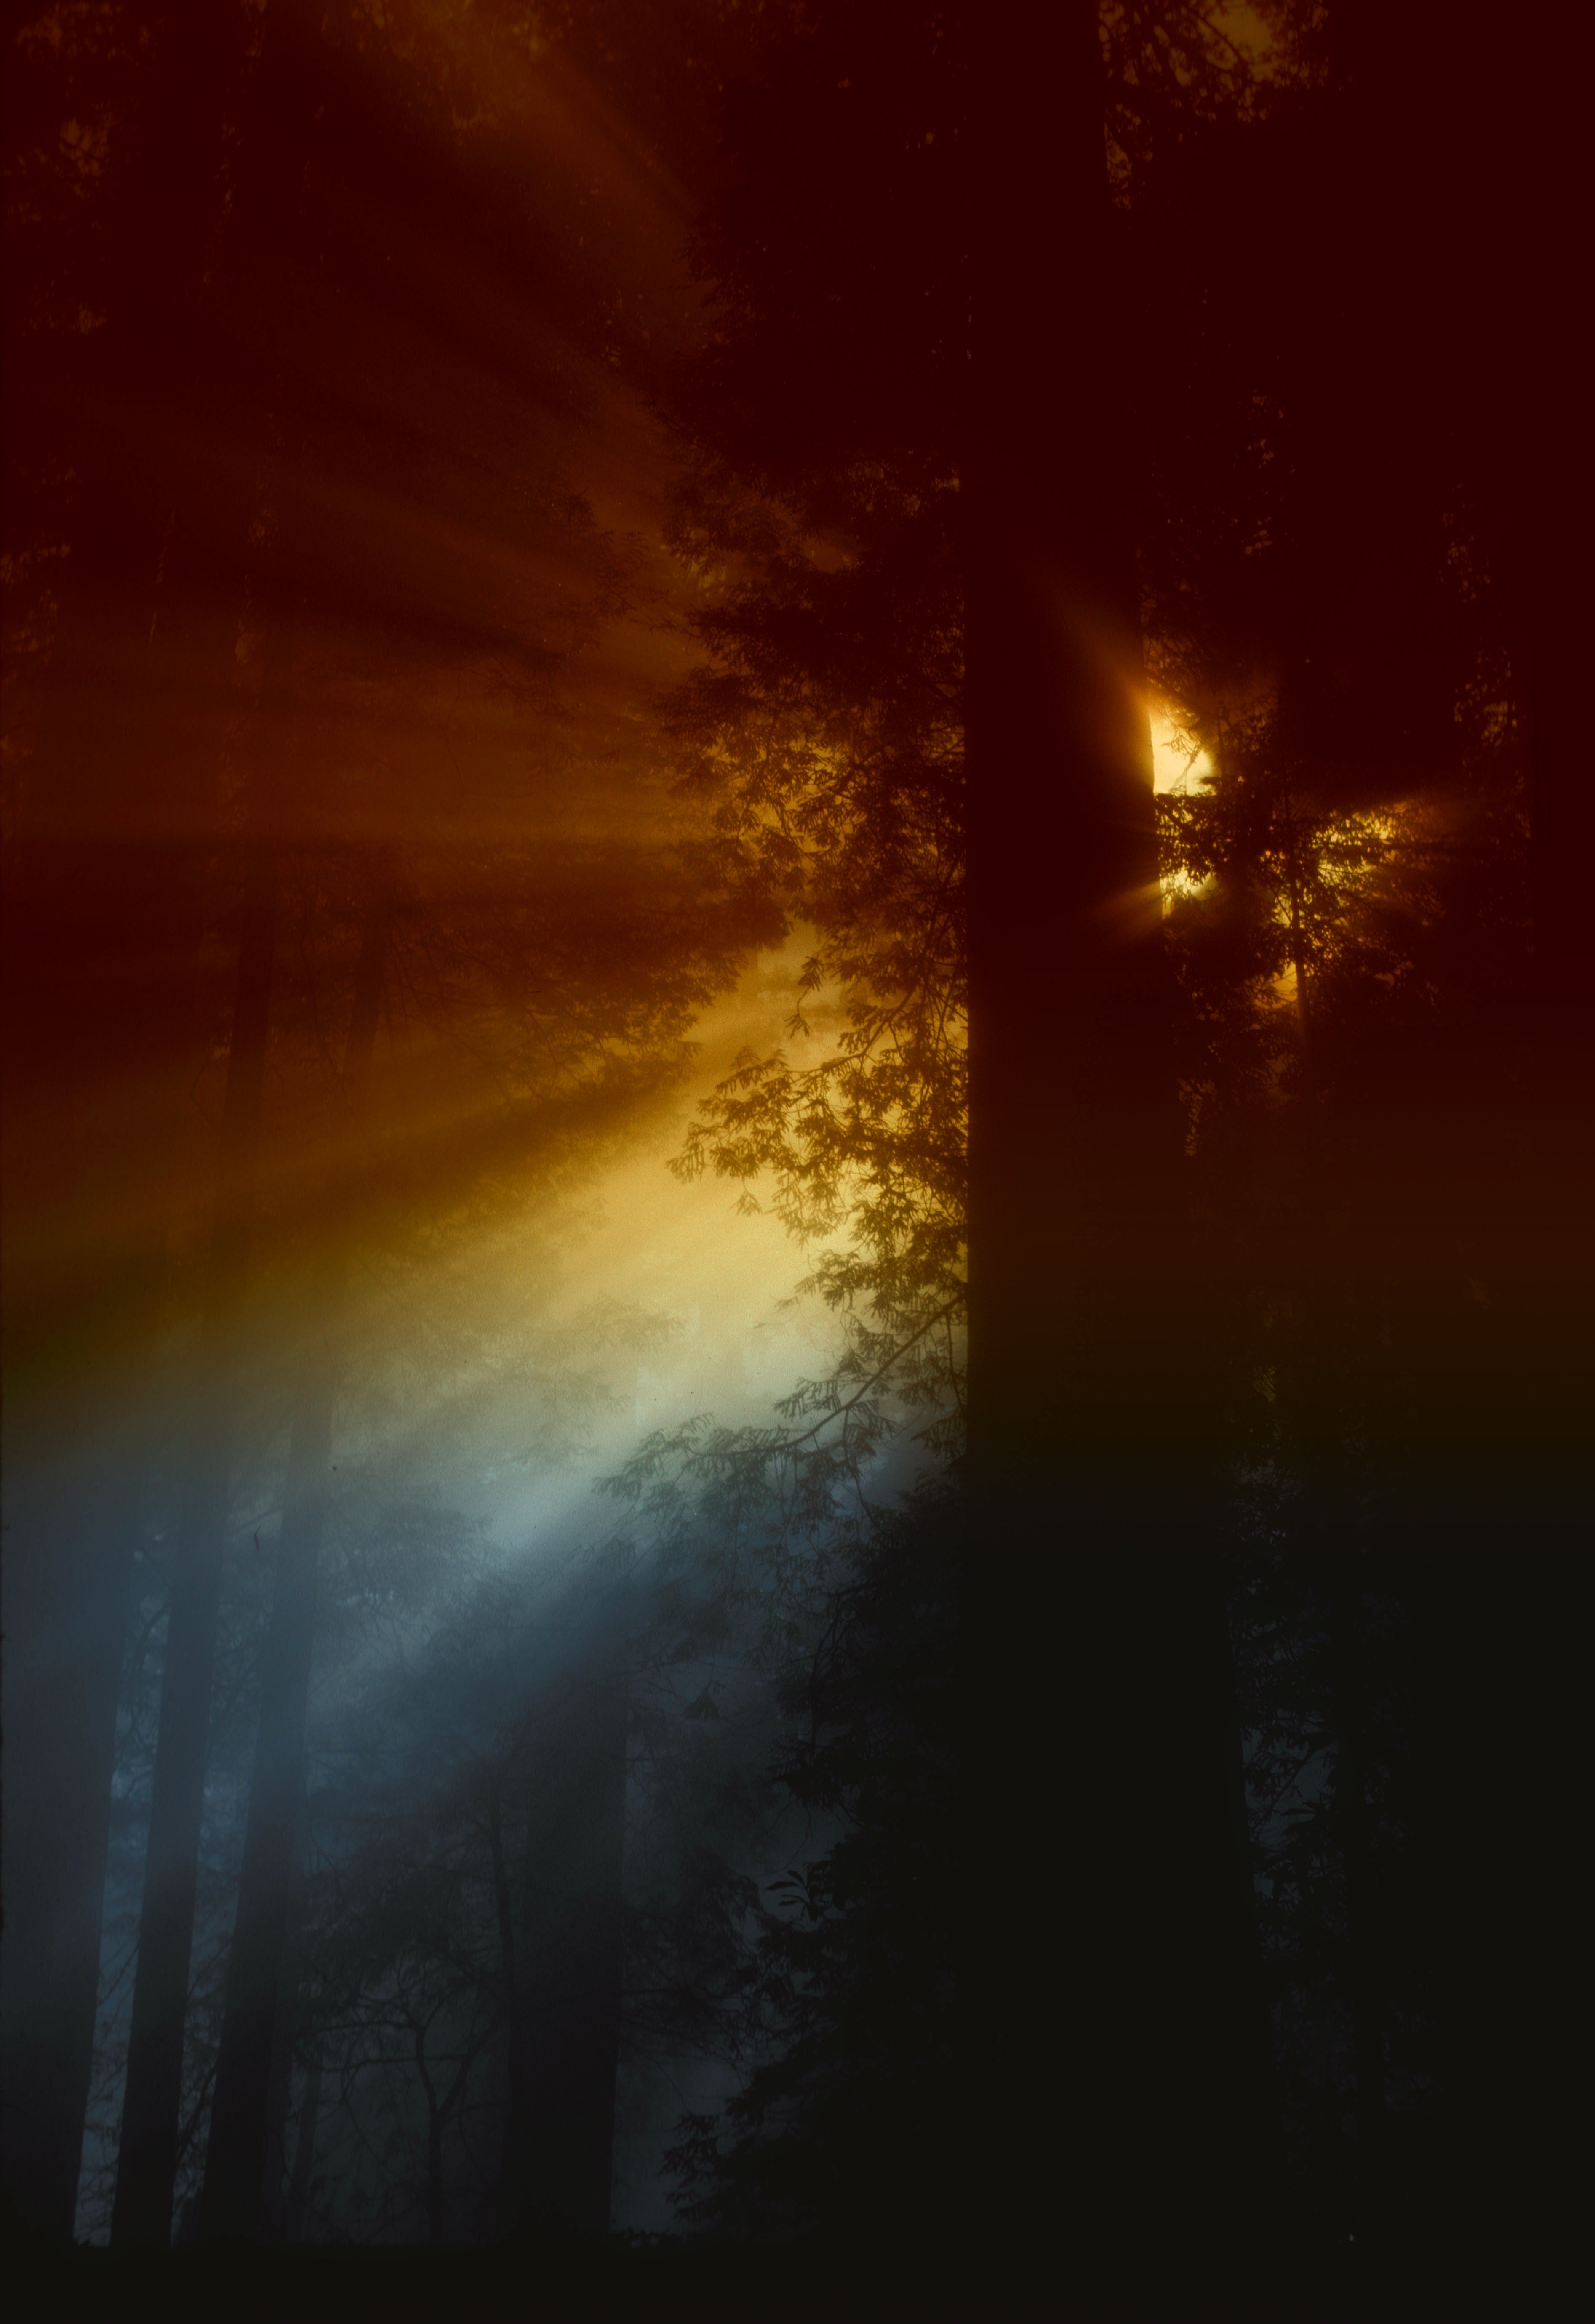 Ray of Sunlight Flowing in Trees, Forest, Light, Nature, Rays, HQ Photo